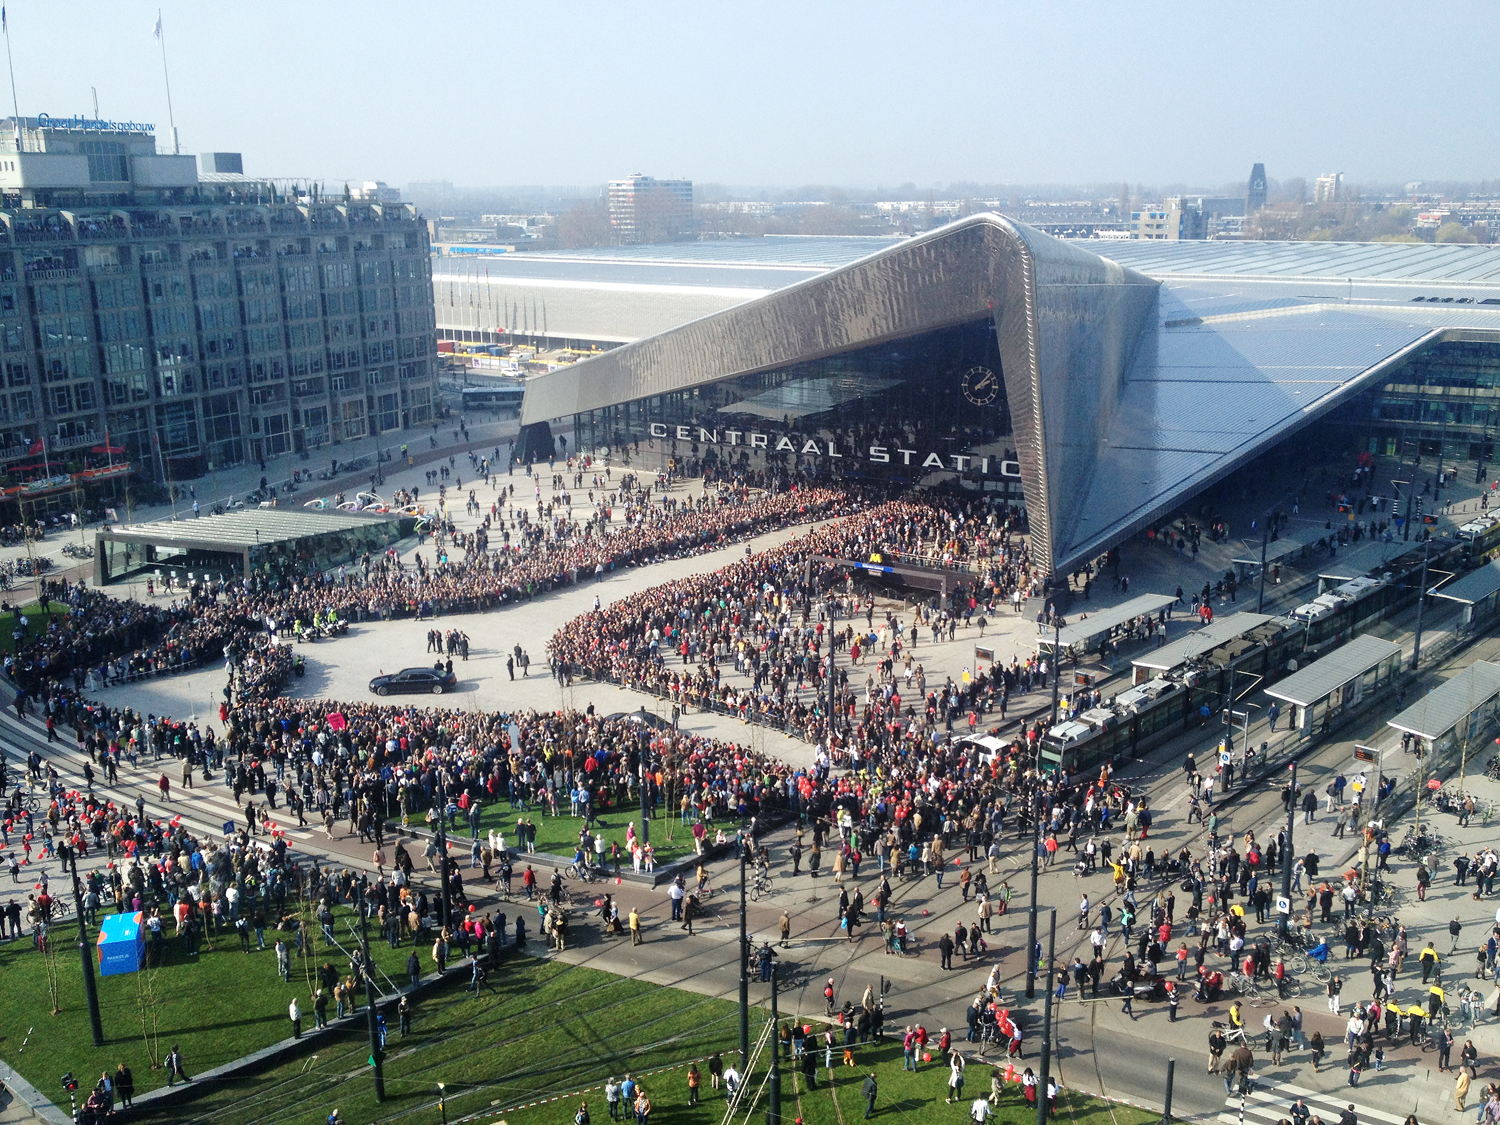 480 Rotterdam Centraal Station Arrival a4